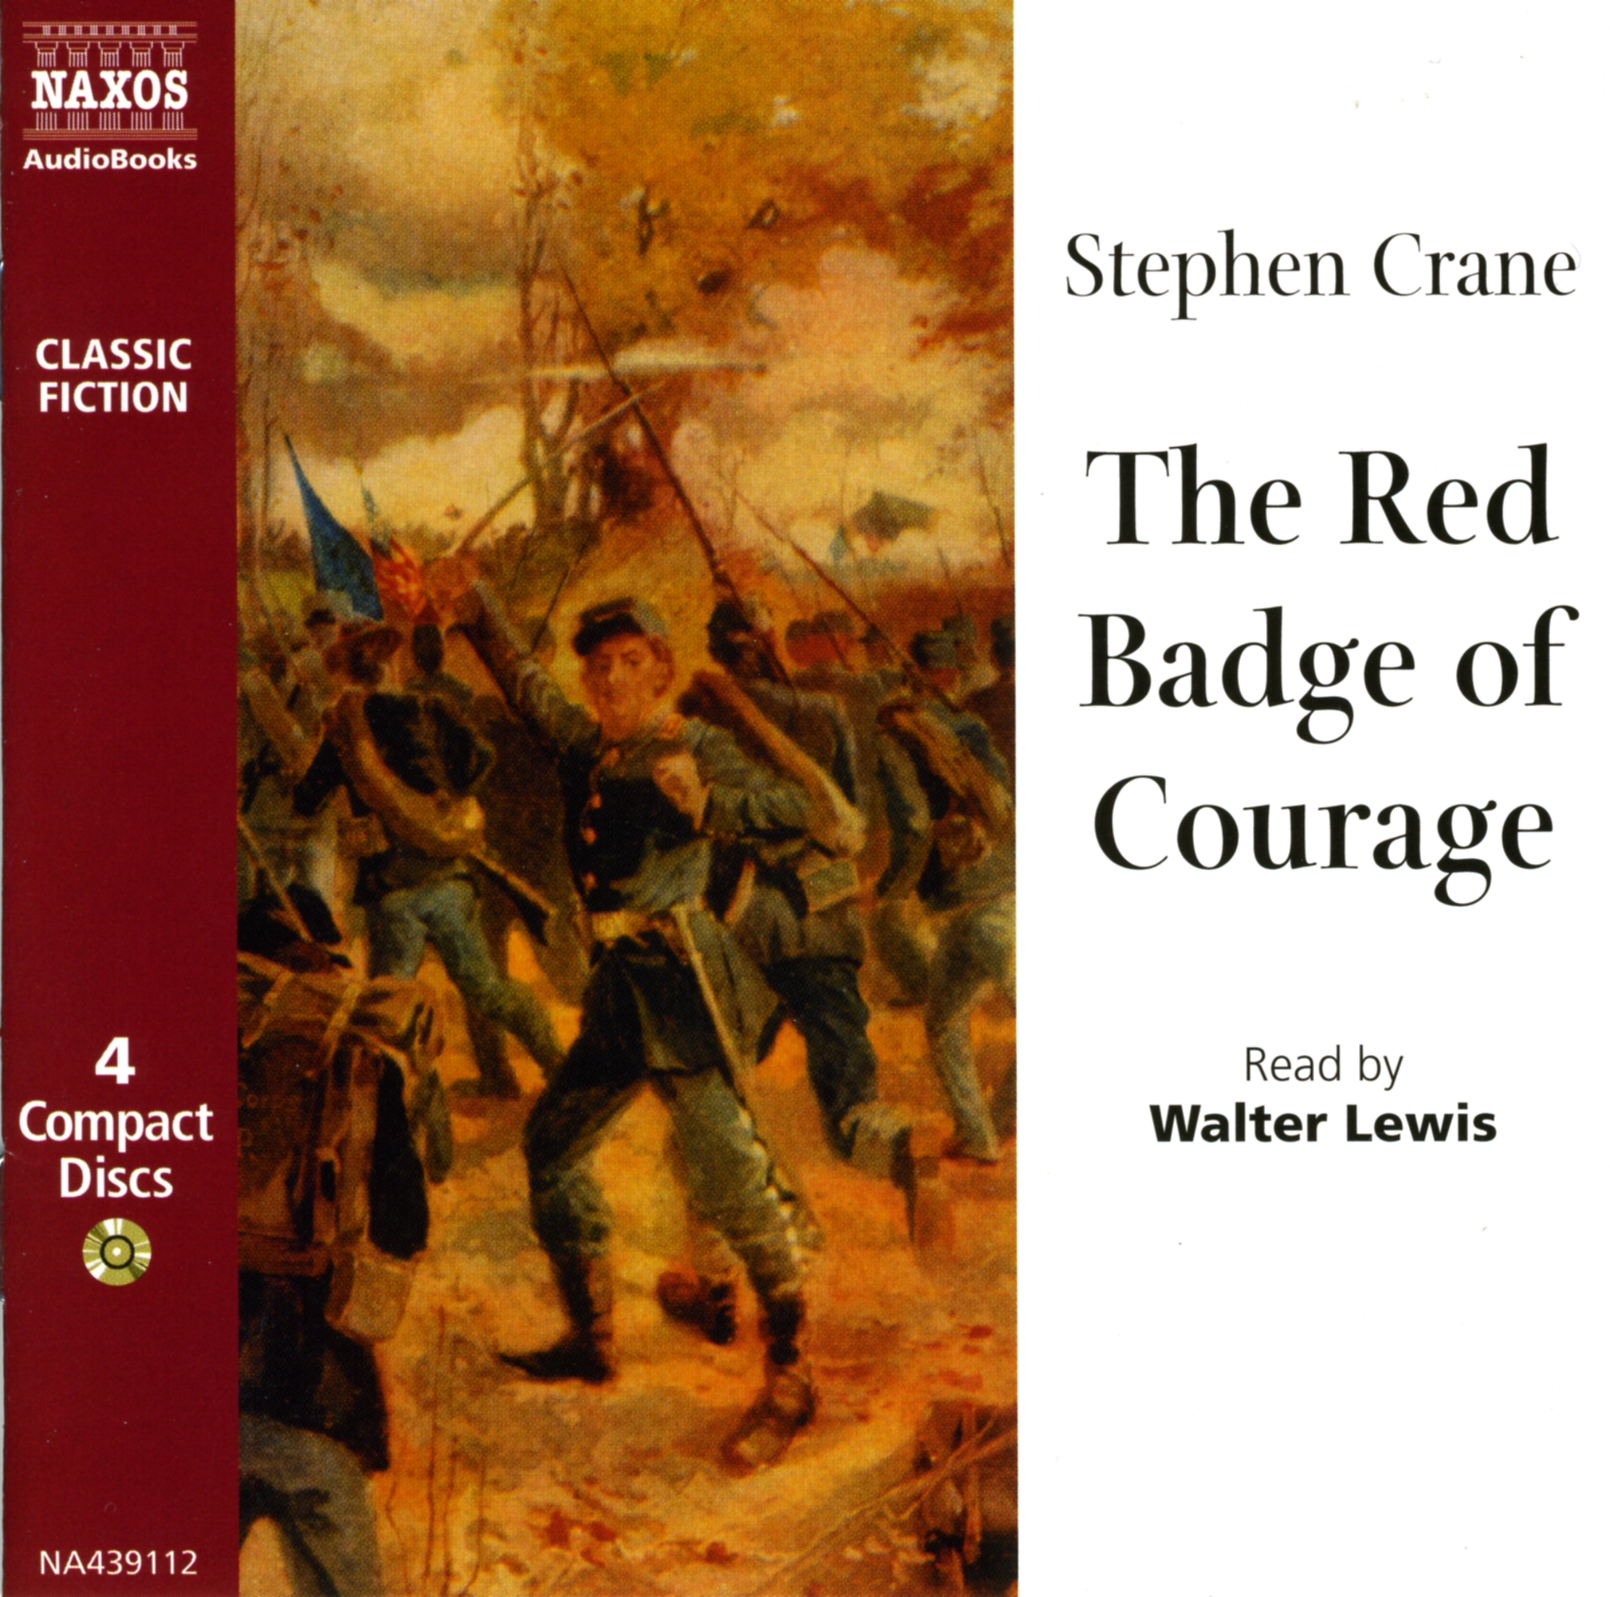 an analysis of imagery in the red badge of courage by stephen crane